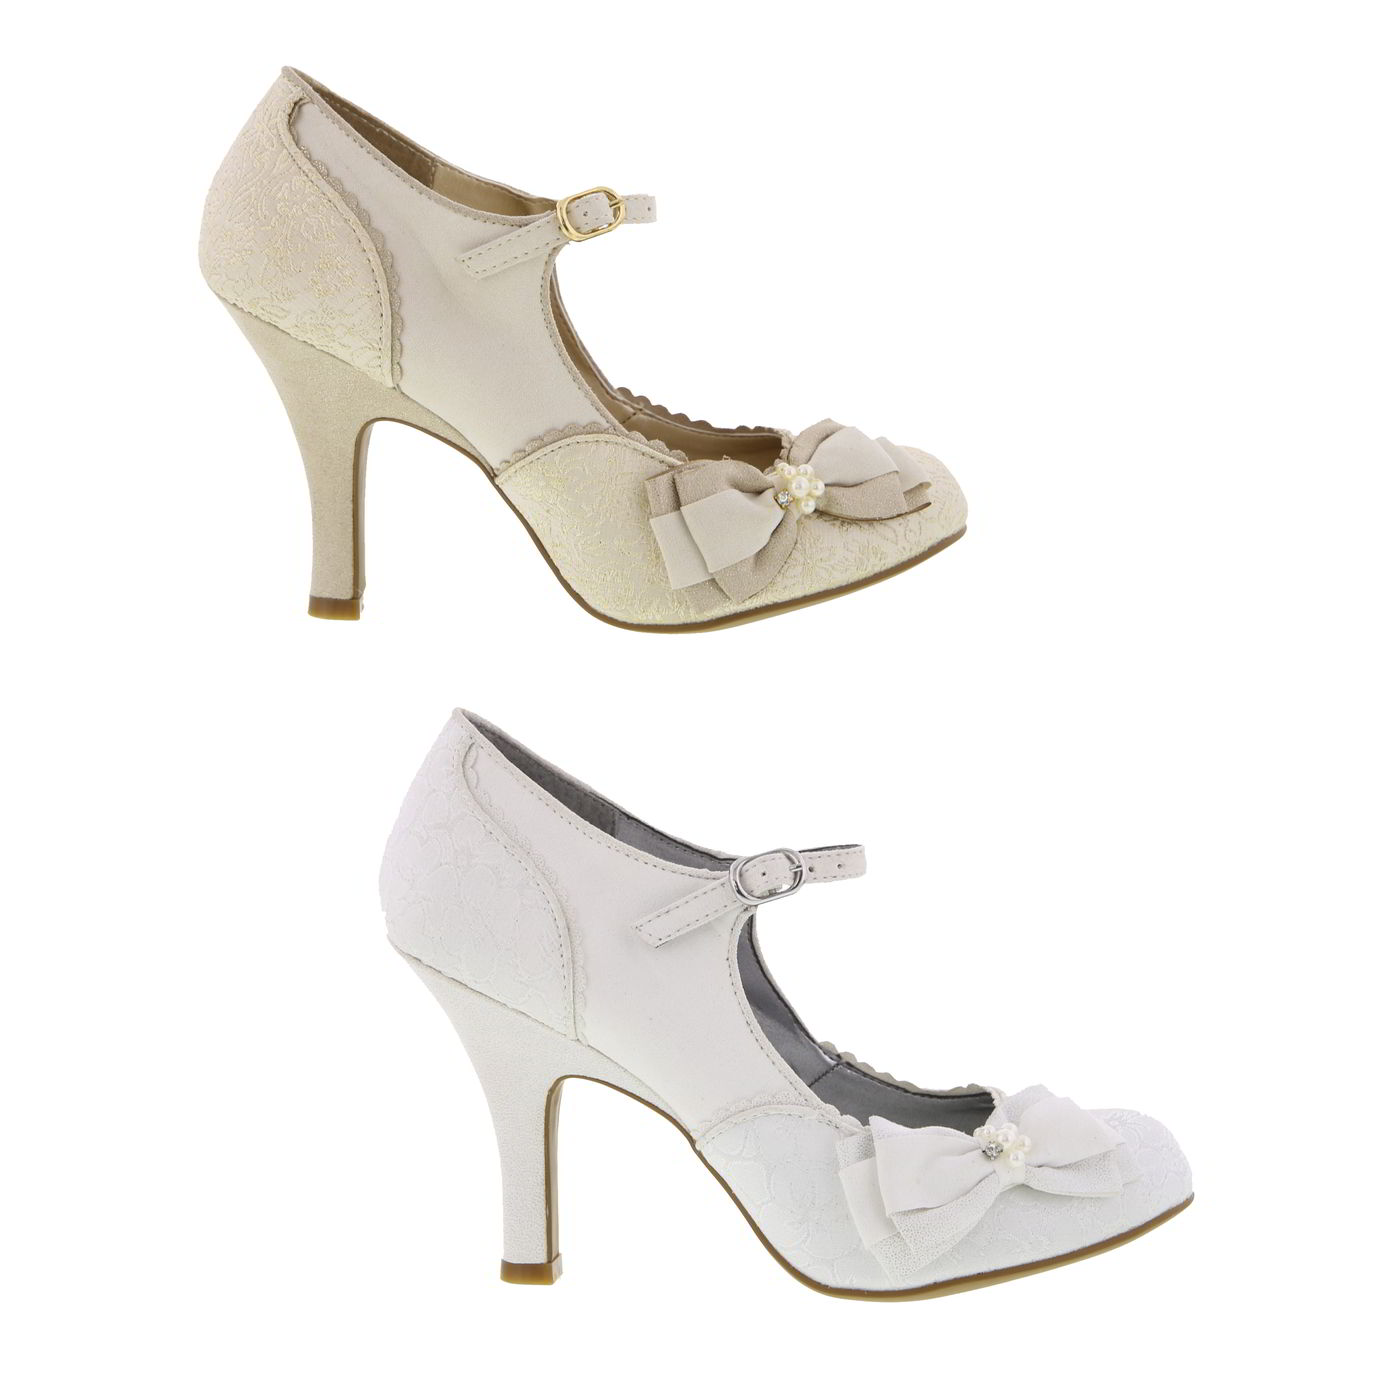 abc524189bd Details about Ruby Shoo Maria Womens Ladies Vegan Bridal Wedding Party Shoes  Size 4-9